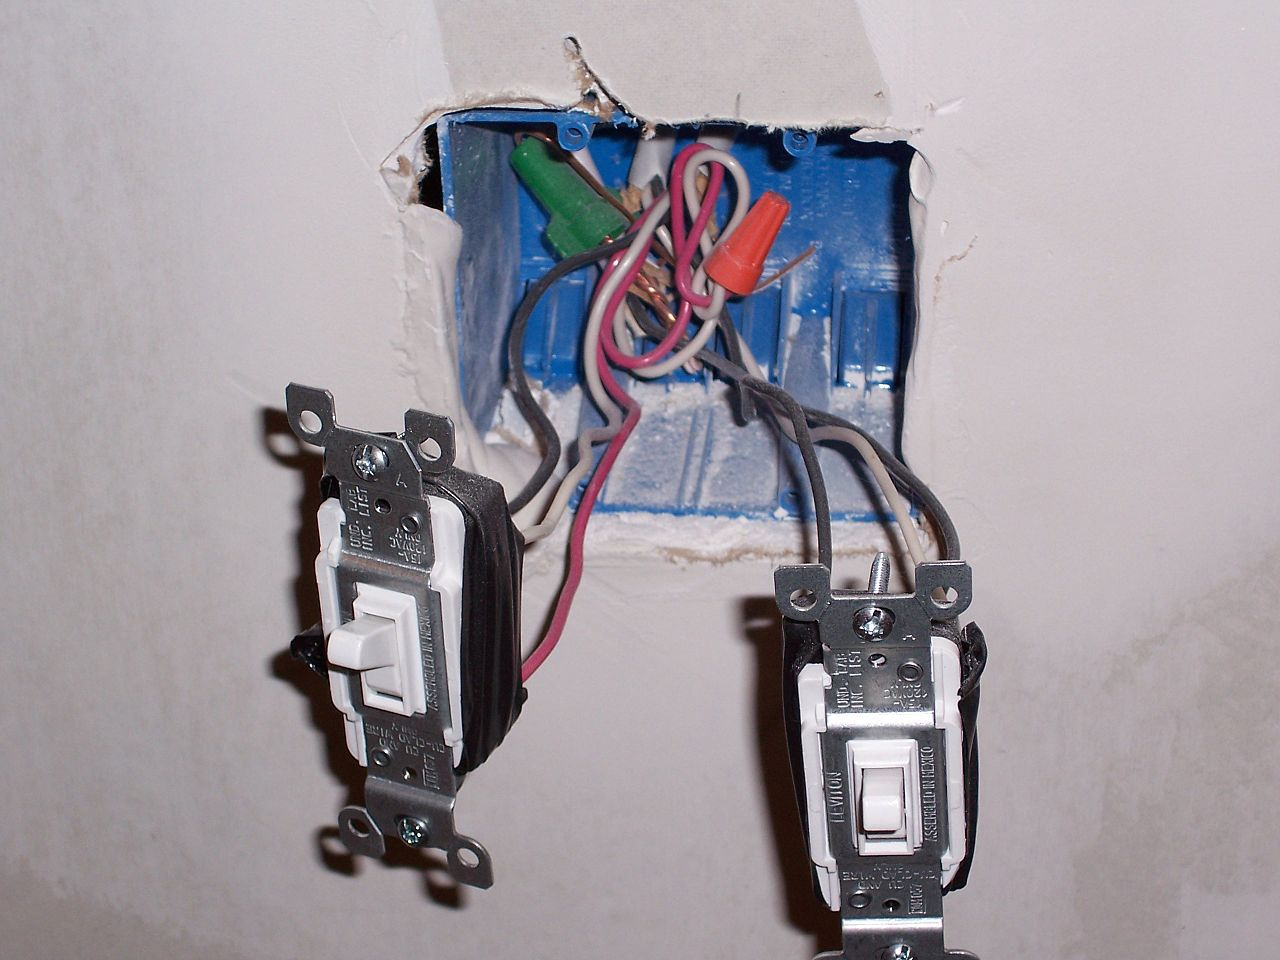 How To Connect Electrical Wires Fixture Terminals Wiring An Outlet Pigtail